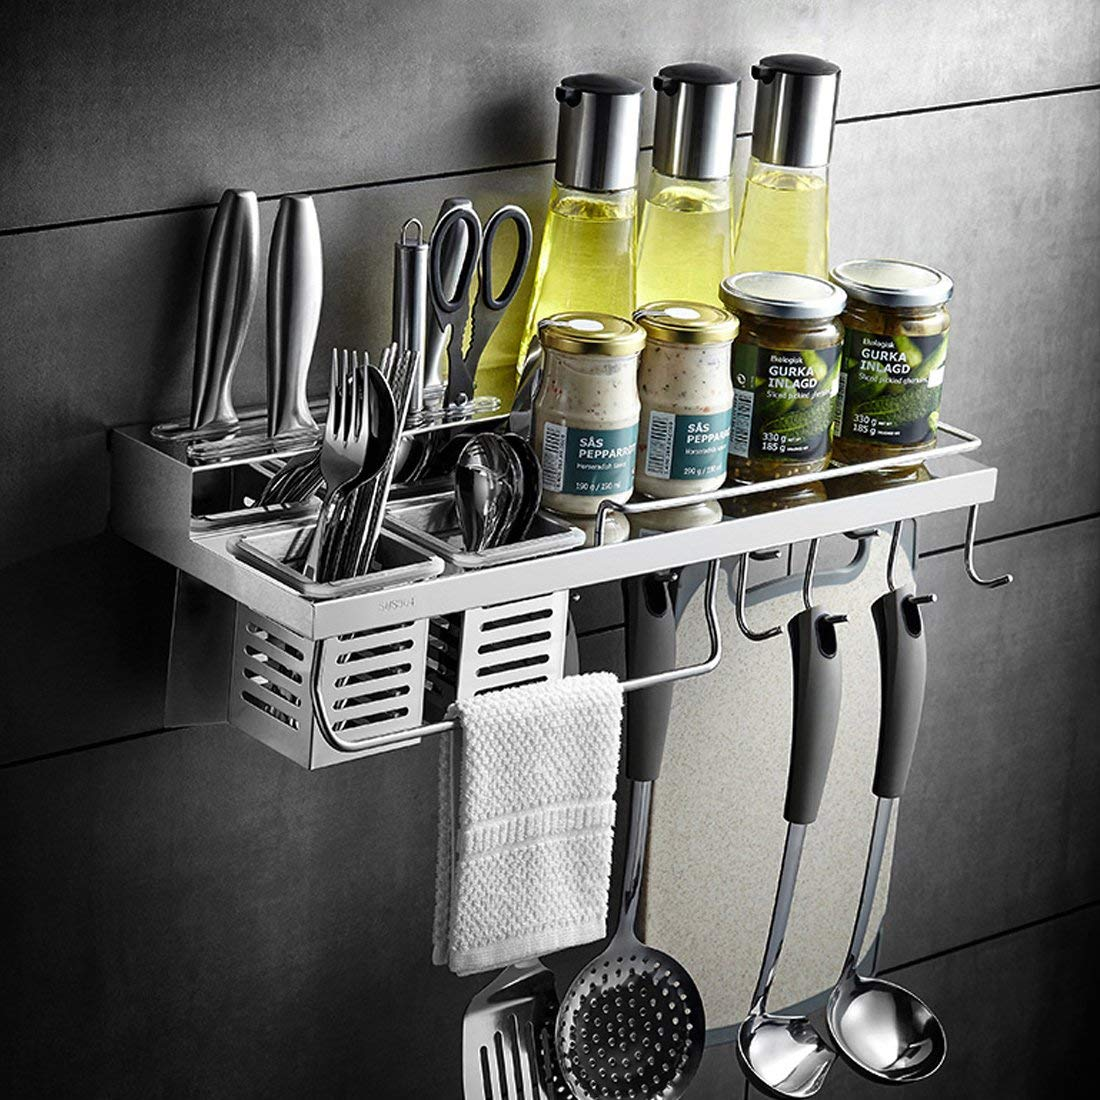 Wall Mounted Kitchen Cabinet Organizer Storage Stand Holder Shelf For Knife Slice Spoon Duster Cloth Cutting